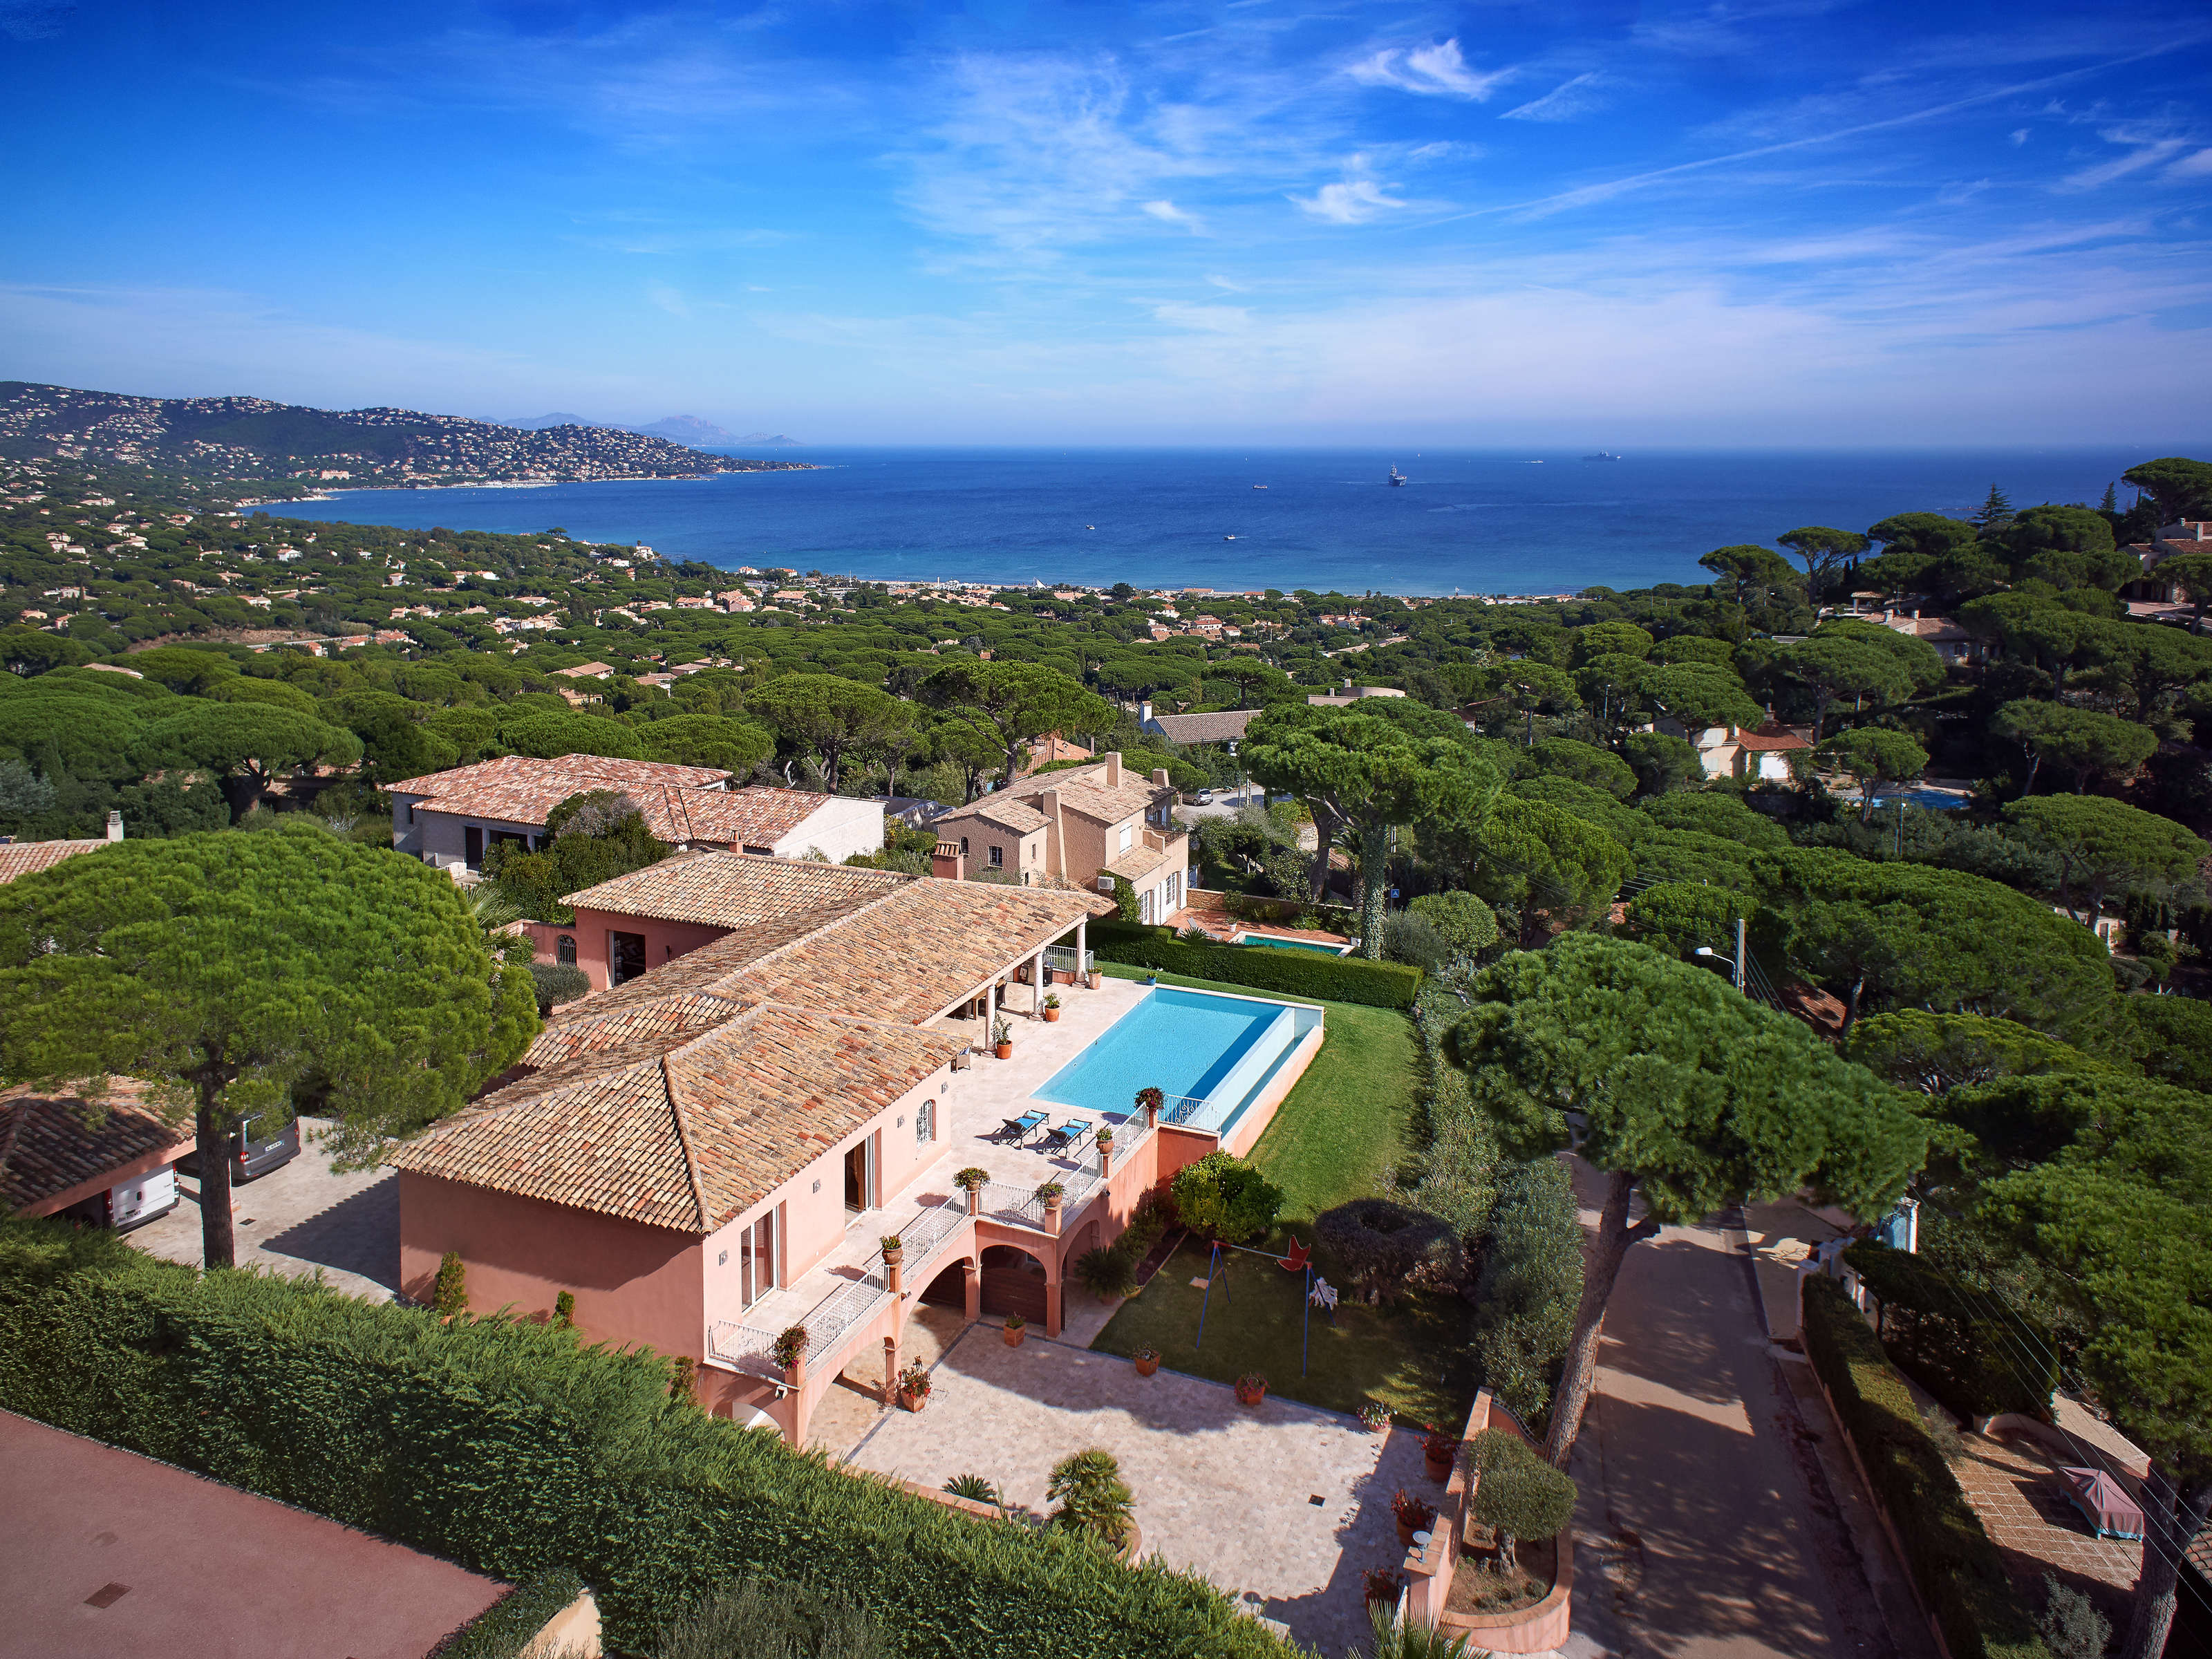 Single Family Home for Sale at Luxurious property with sea view over the bay of St. Tropez Sainte Maxime Sainte Maxime, Provence-Alpes-Cote D'Azur 83120 France